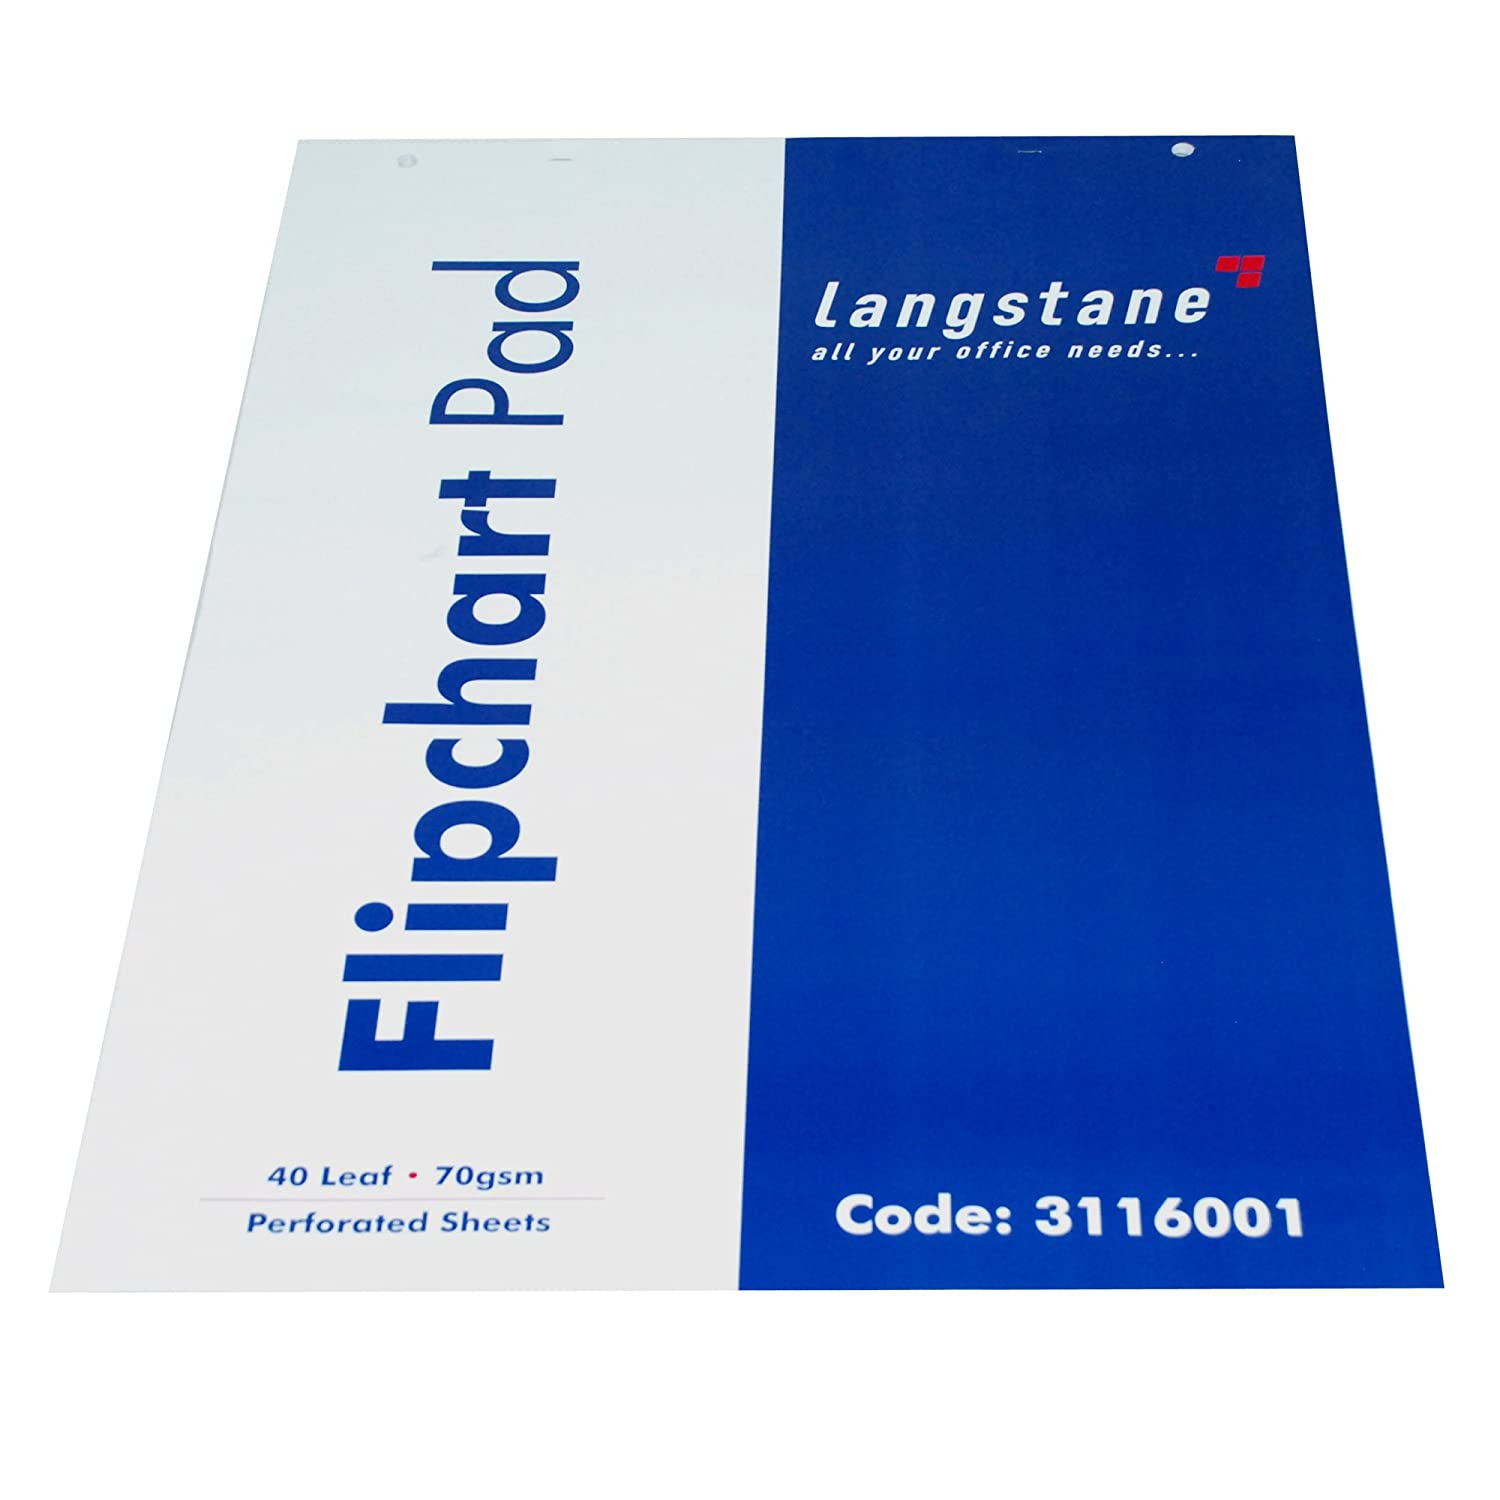 Langstane A1 Flipchart Pad 40 Leaf 70GSM Perforated Sheets 20mm Grid Layout (Pack of 5) Langstane®